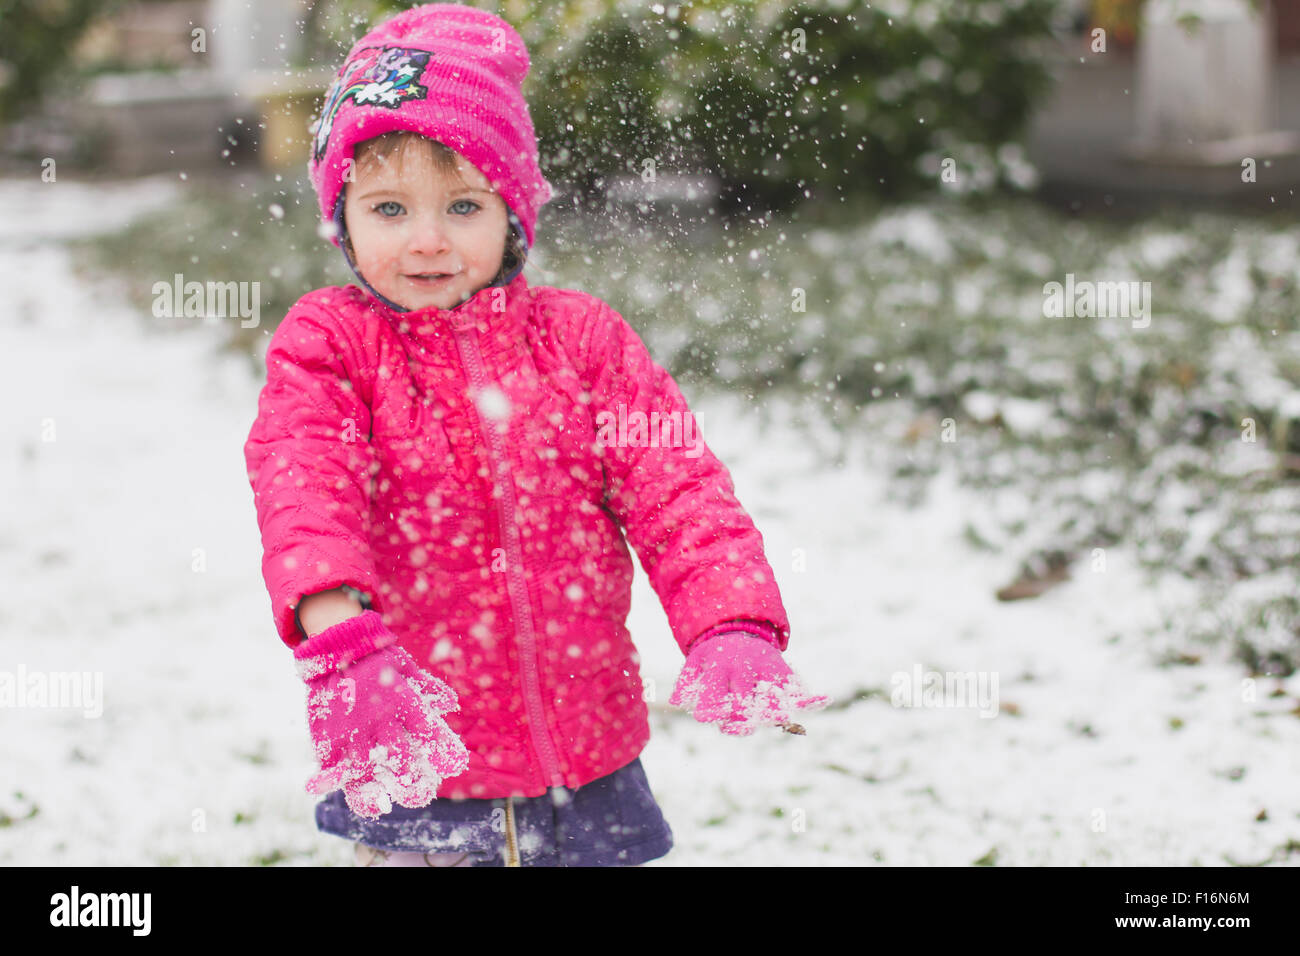 Young toddler girl is throwing snow while wearing a pink coat and hat - Stock Image